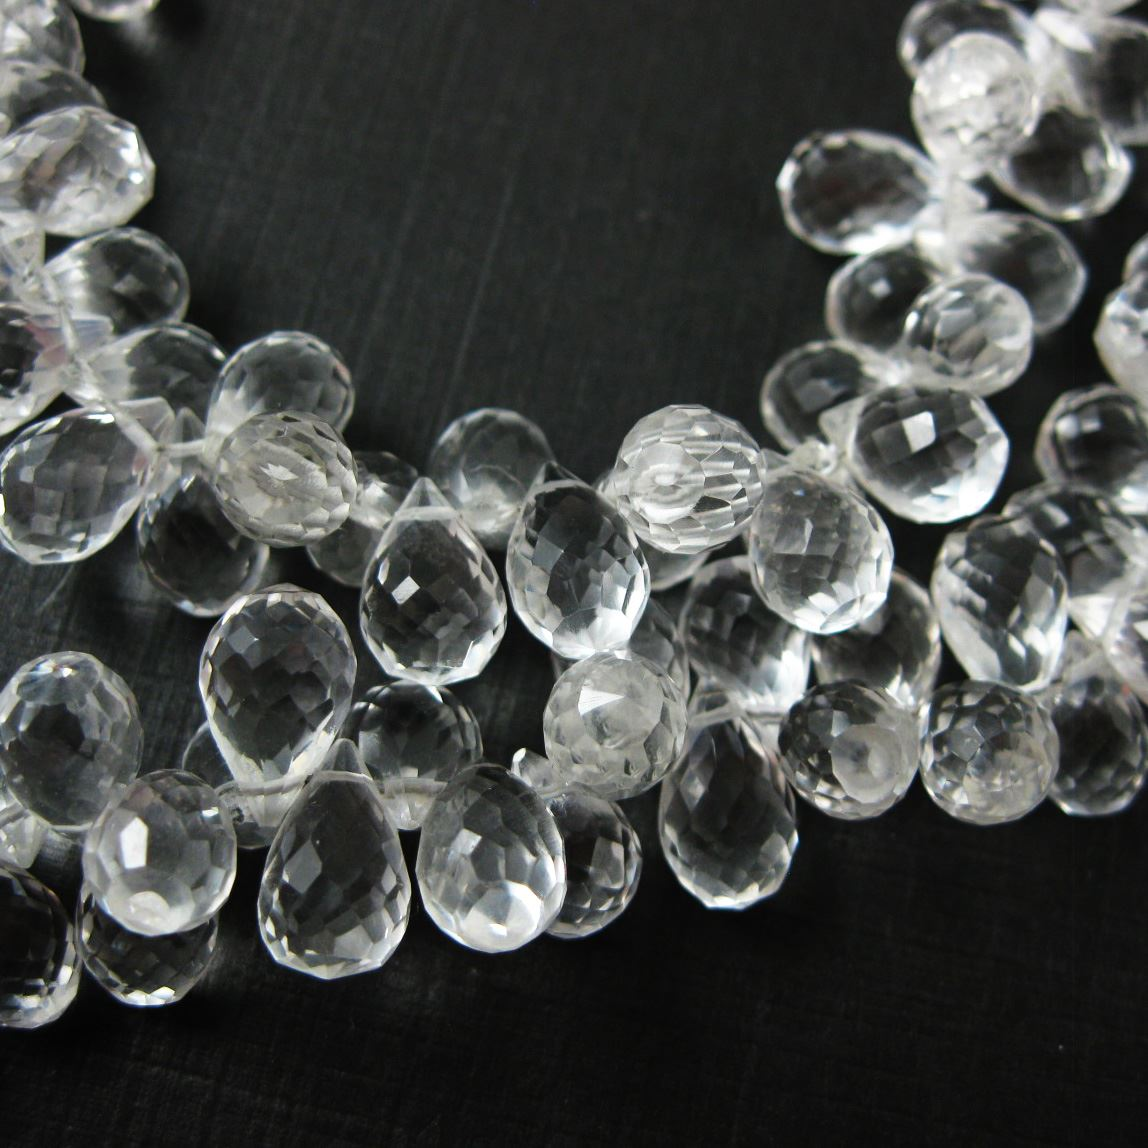 Semi Precious Gemstone Beads - 100% Genuine Crystal Gemstone Faceted Drops - Grade AA Briolette Nature Stone - 12 mm- 5 pcs